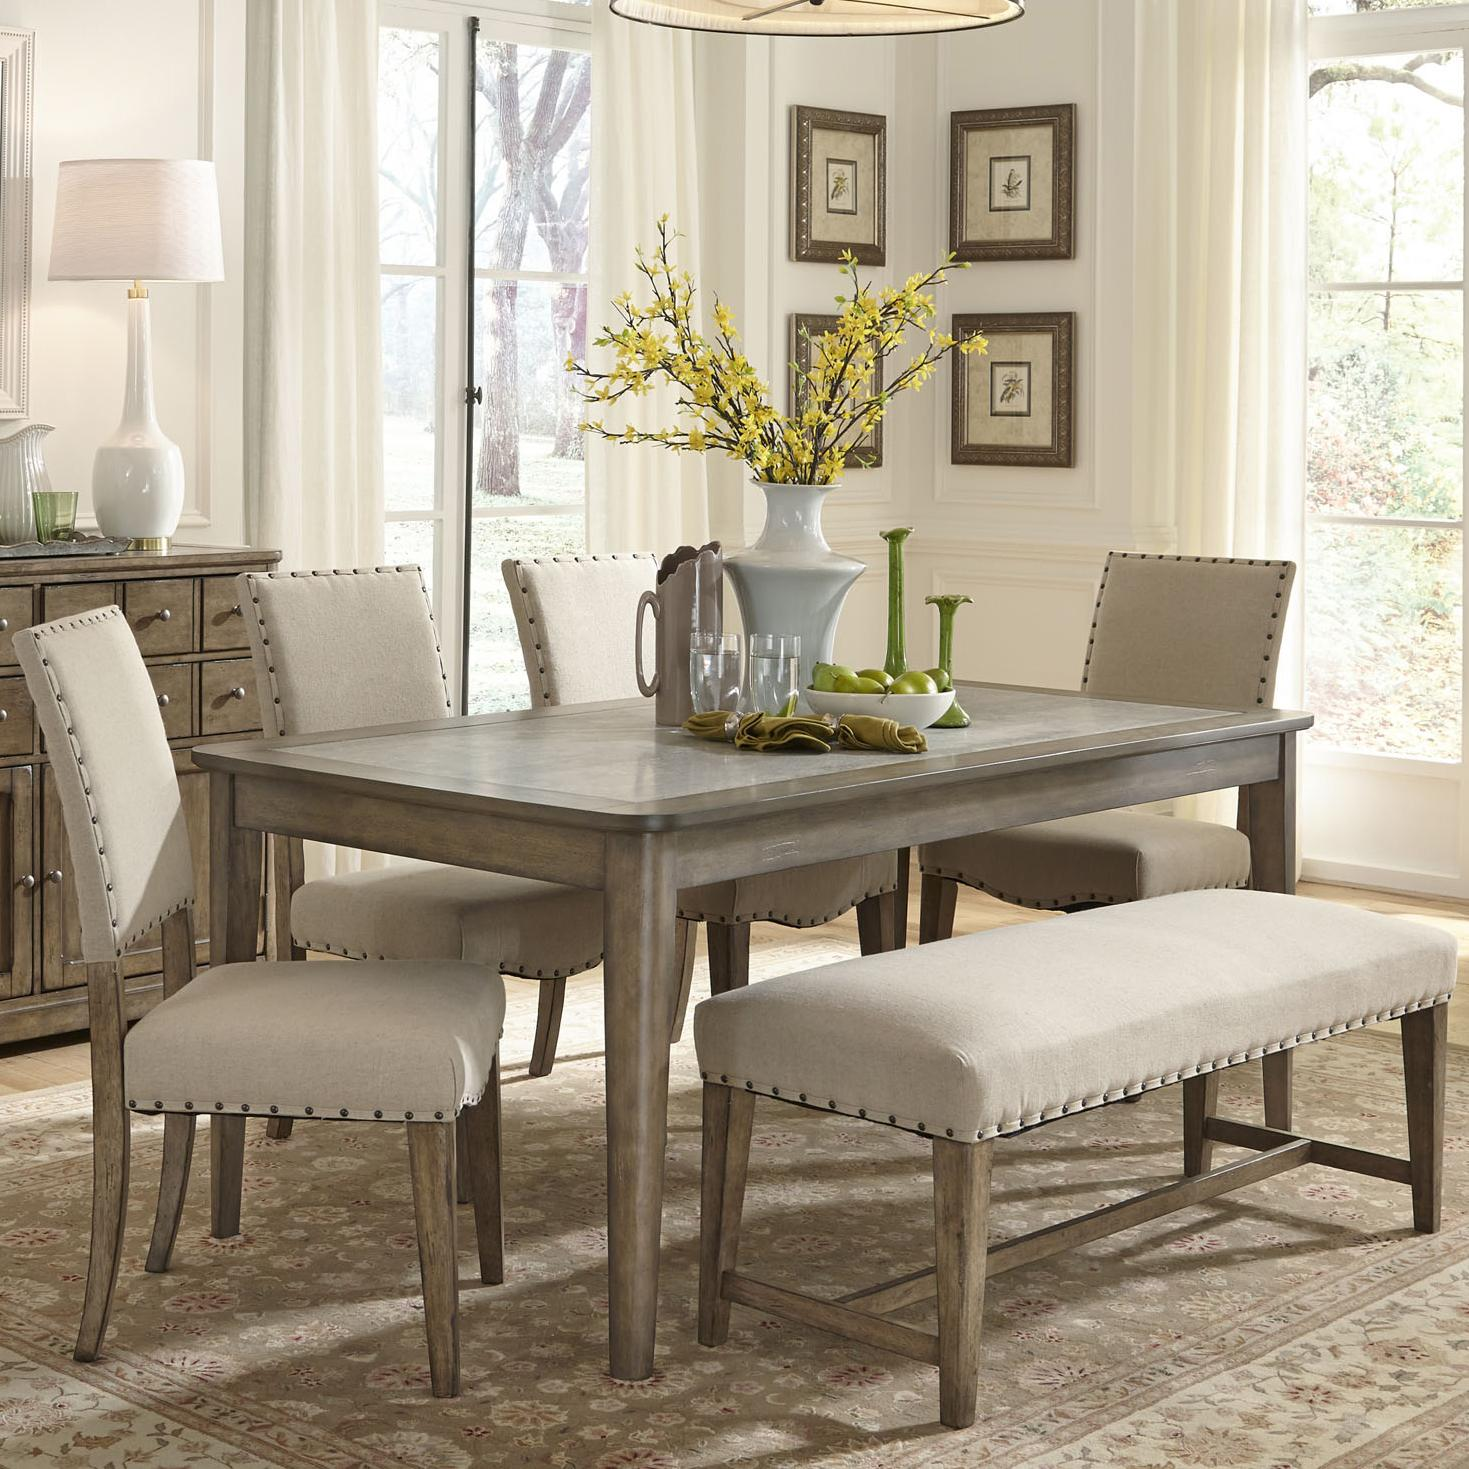 Liberty Furniture Weatherford Rustic Casual 6 Piece Dining